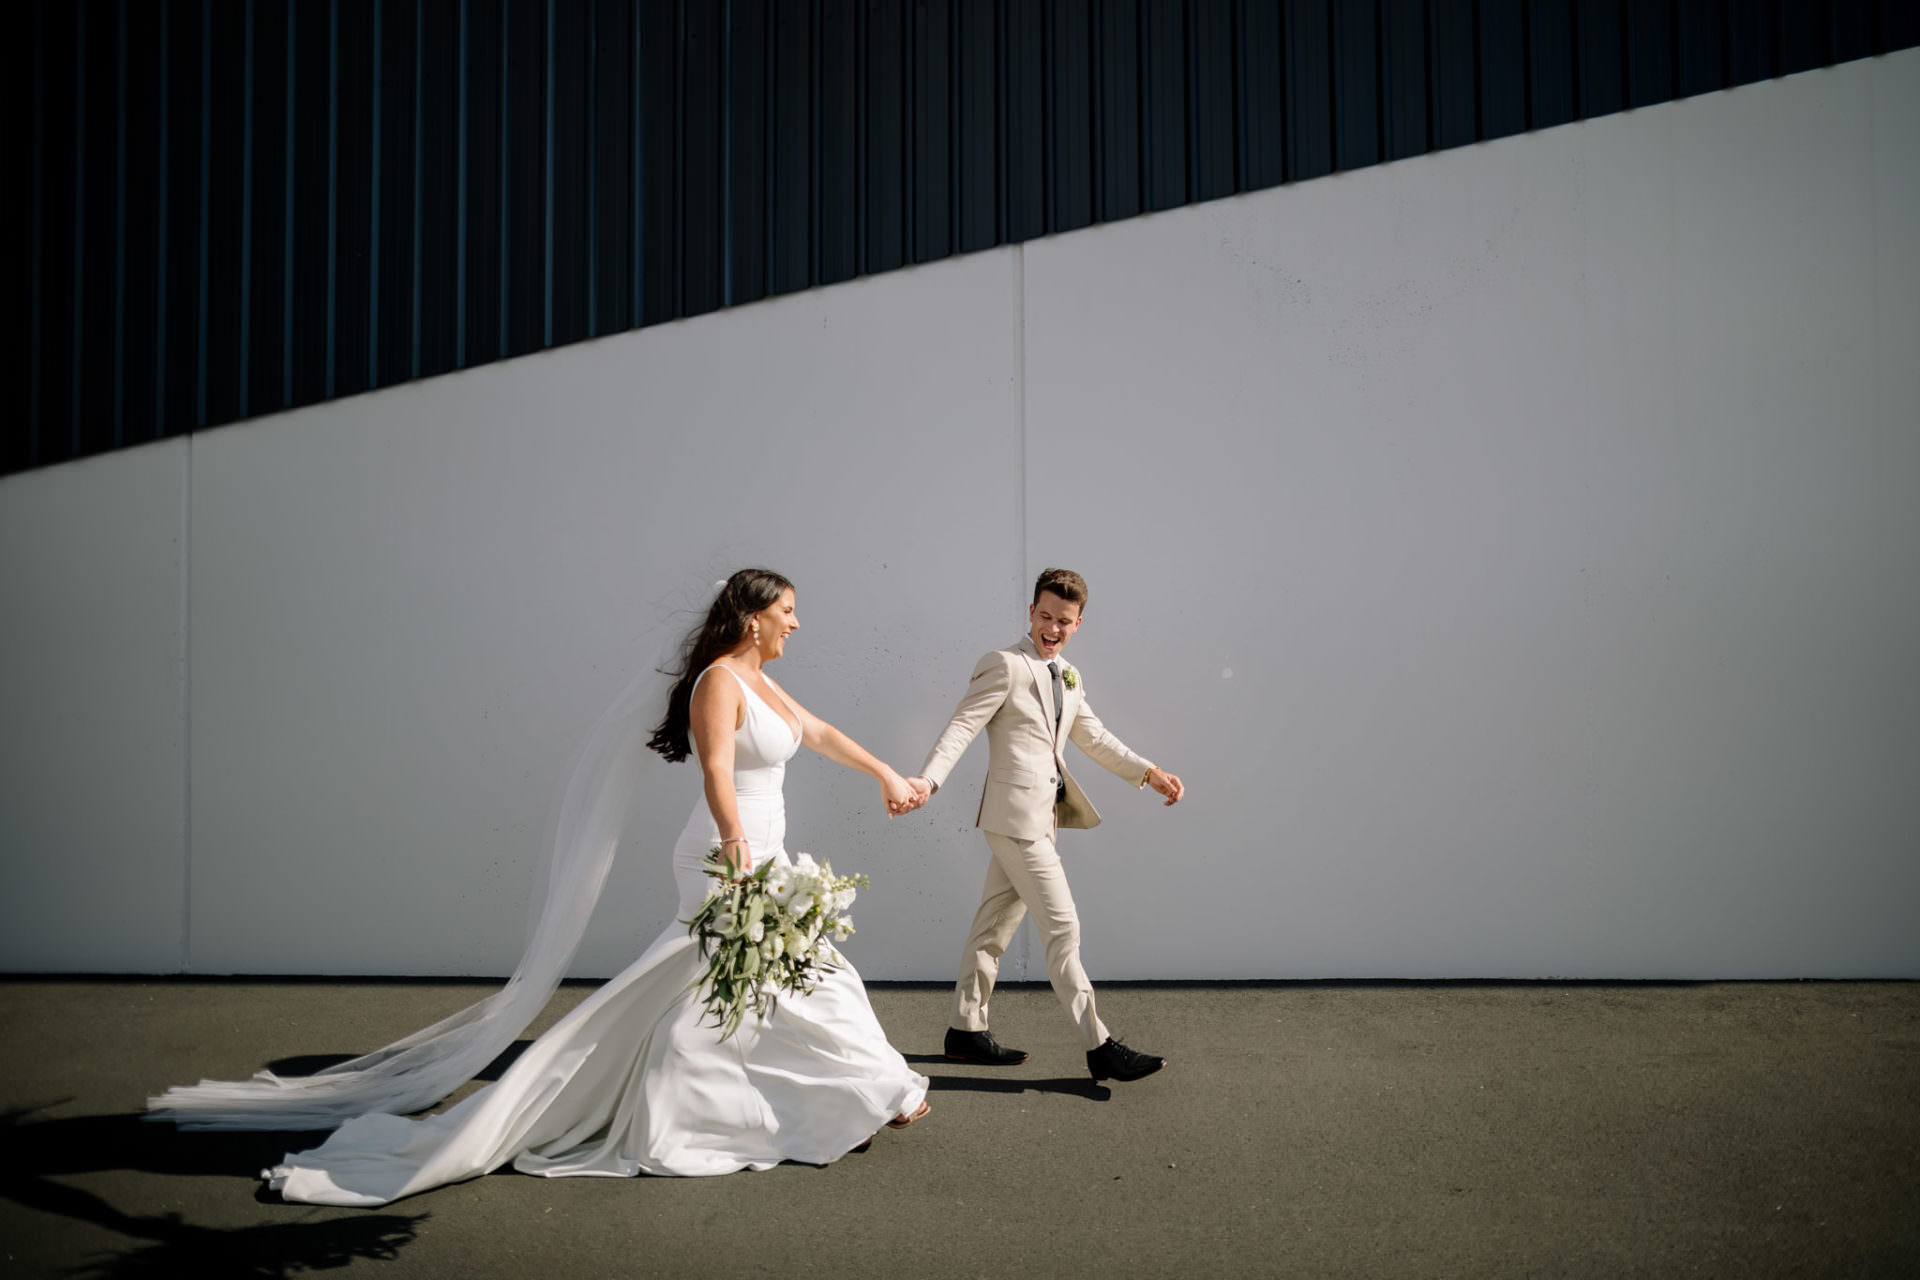 Waikato wedding photograph of bride and groom walking accross black and white wall